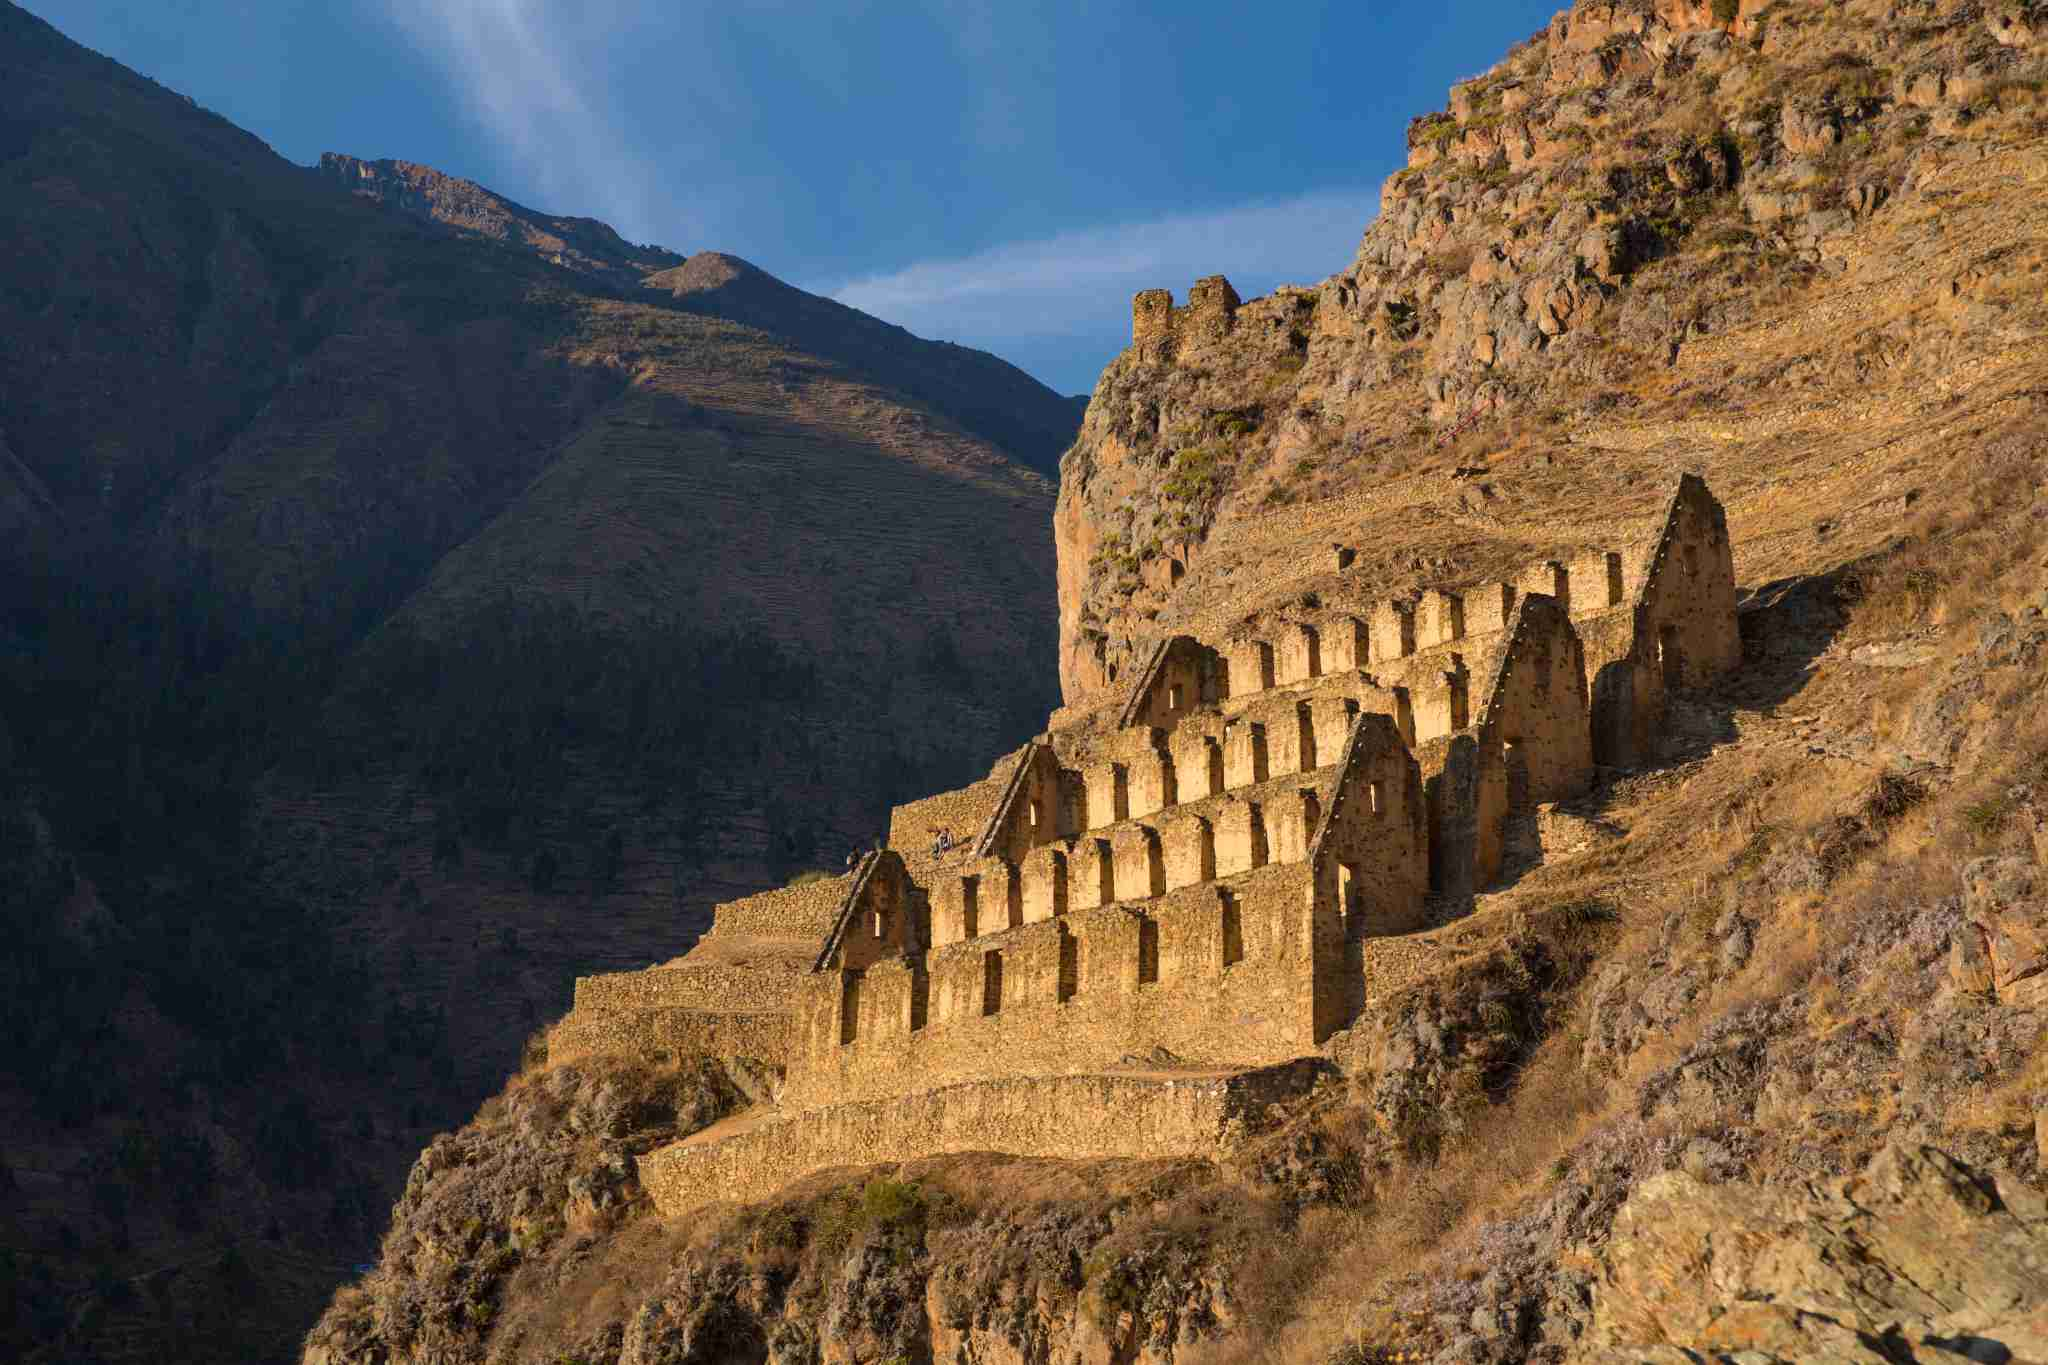 Pinkuylluna, the ruins of Incan graineries in Ollantaytambo. (Photo by: Prisma by Dukas/Universal Images Group via Getty Images)